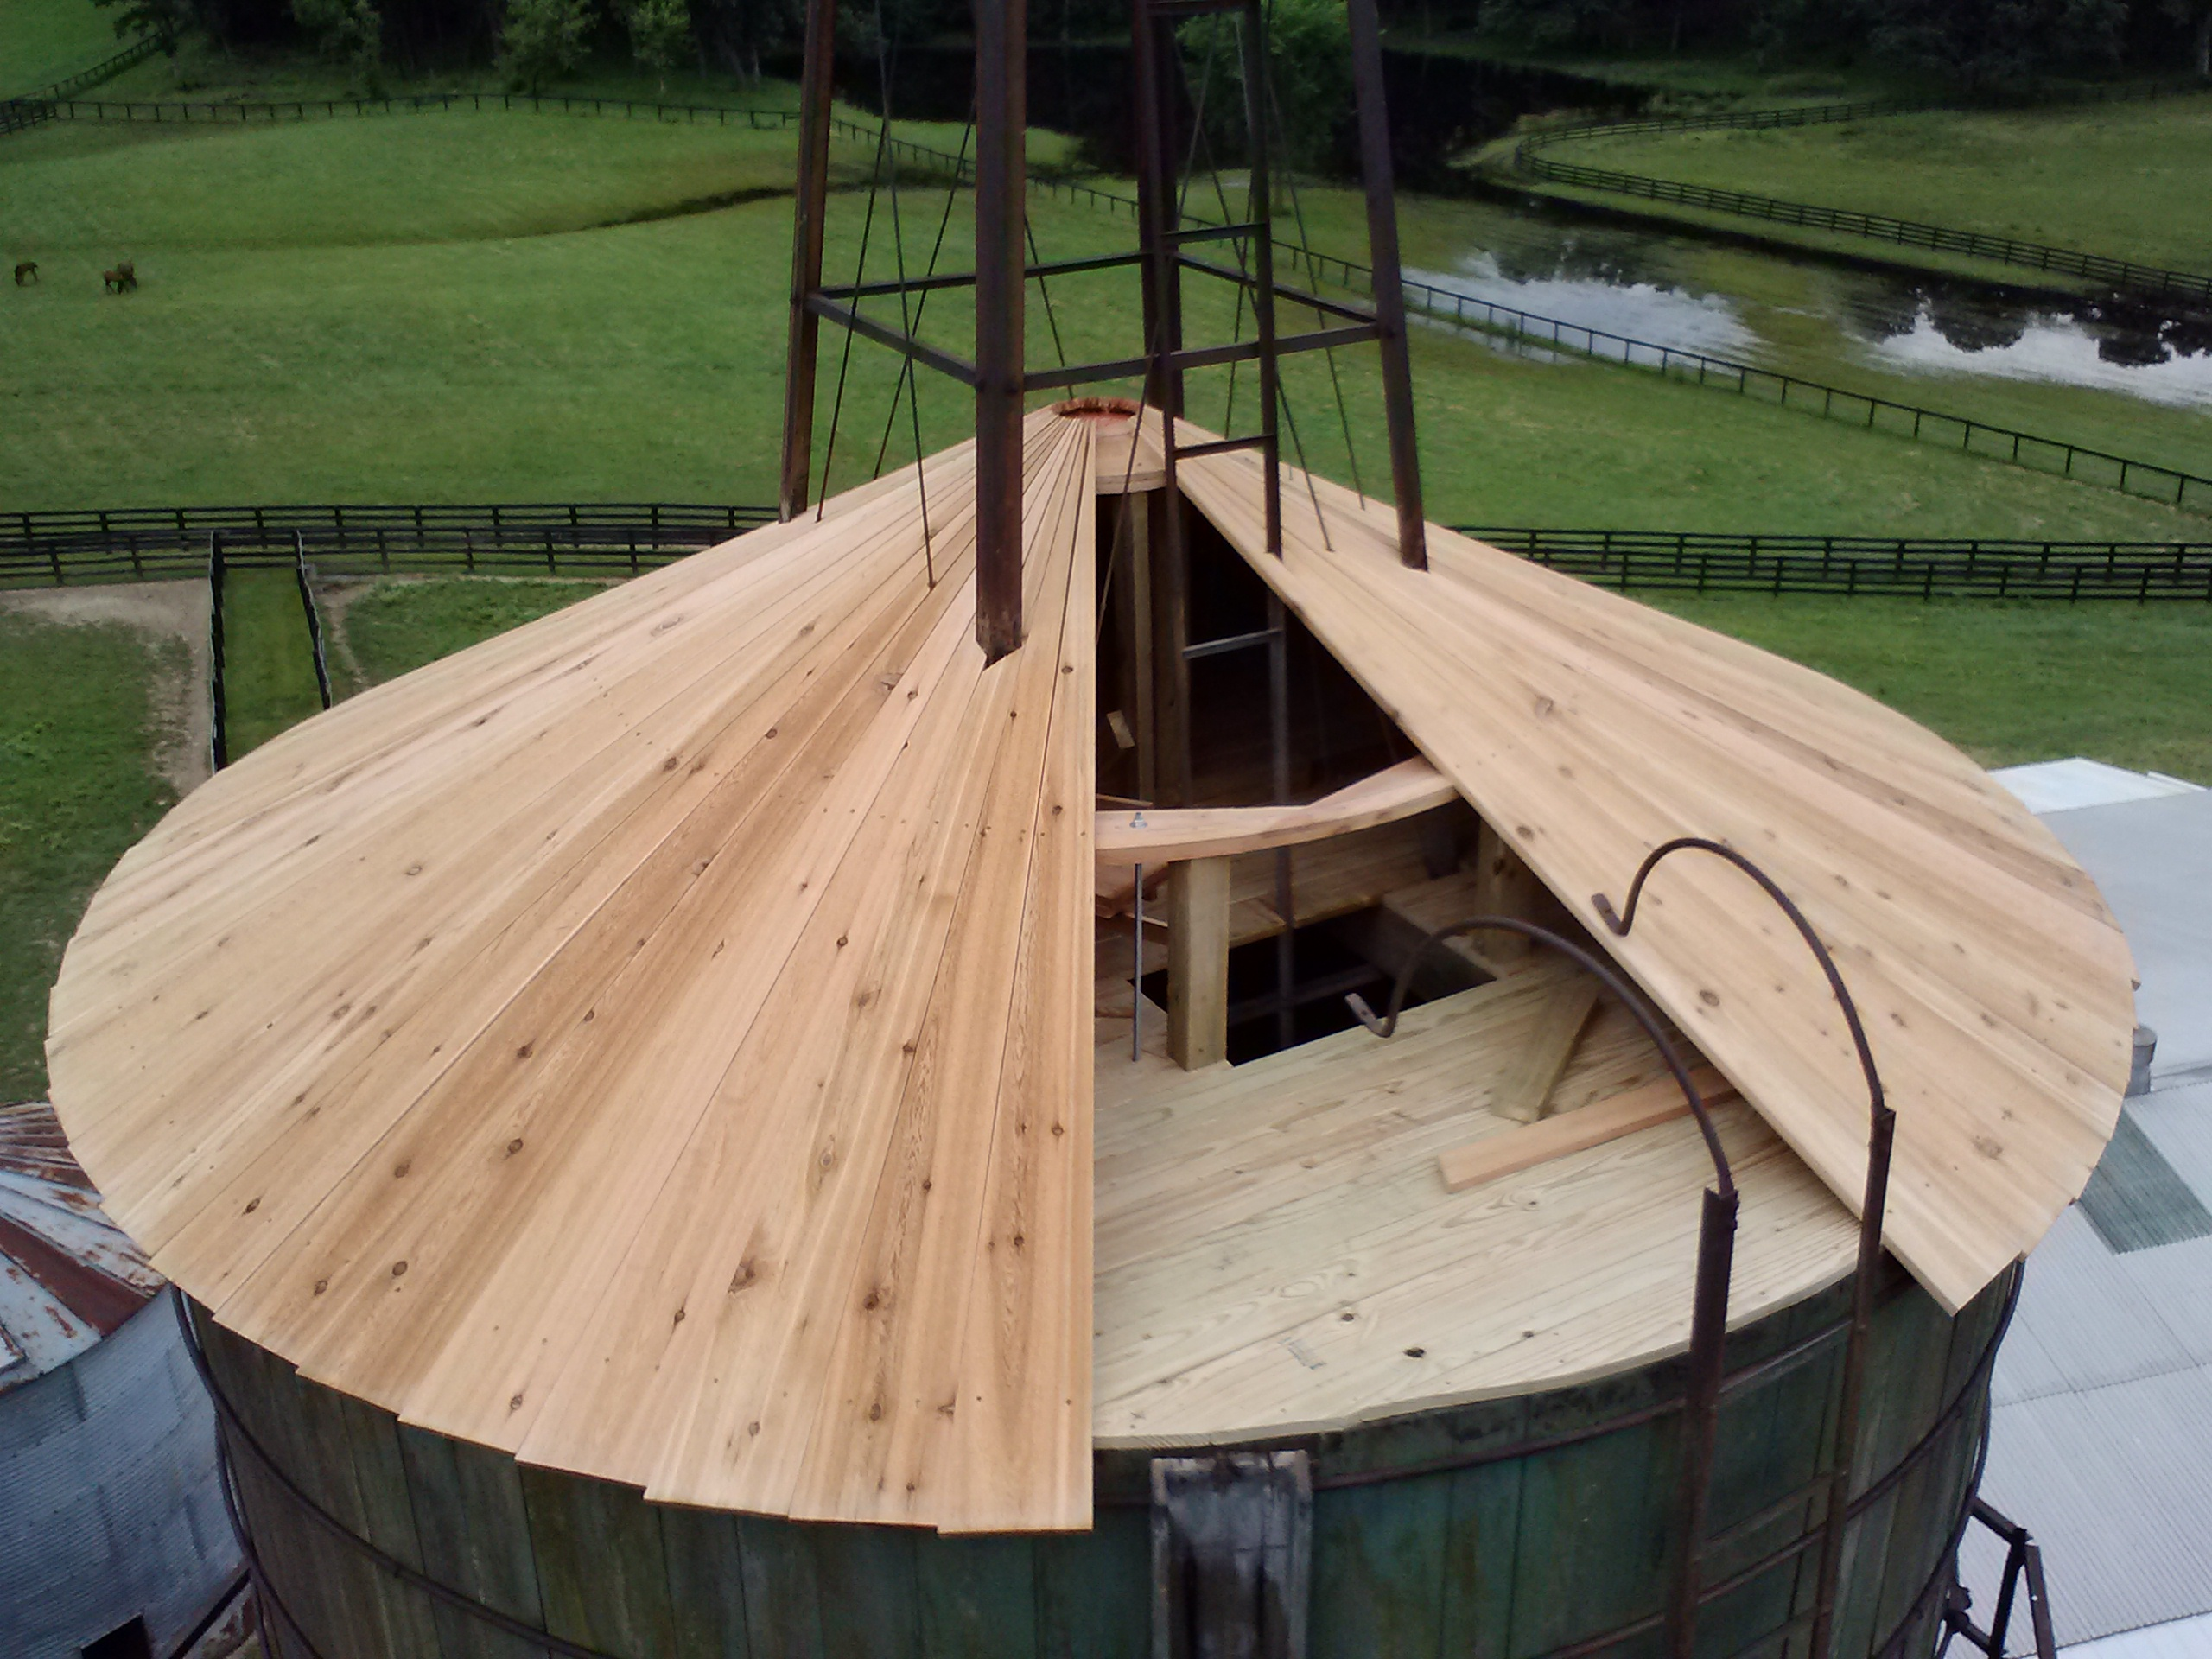 RJ's new cedar roof and tank top